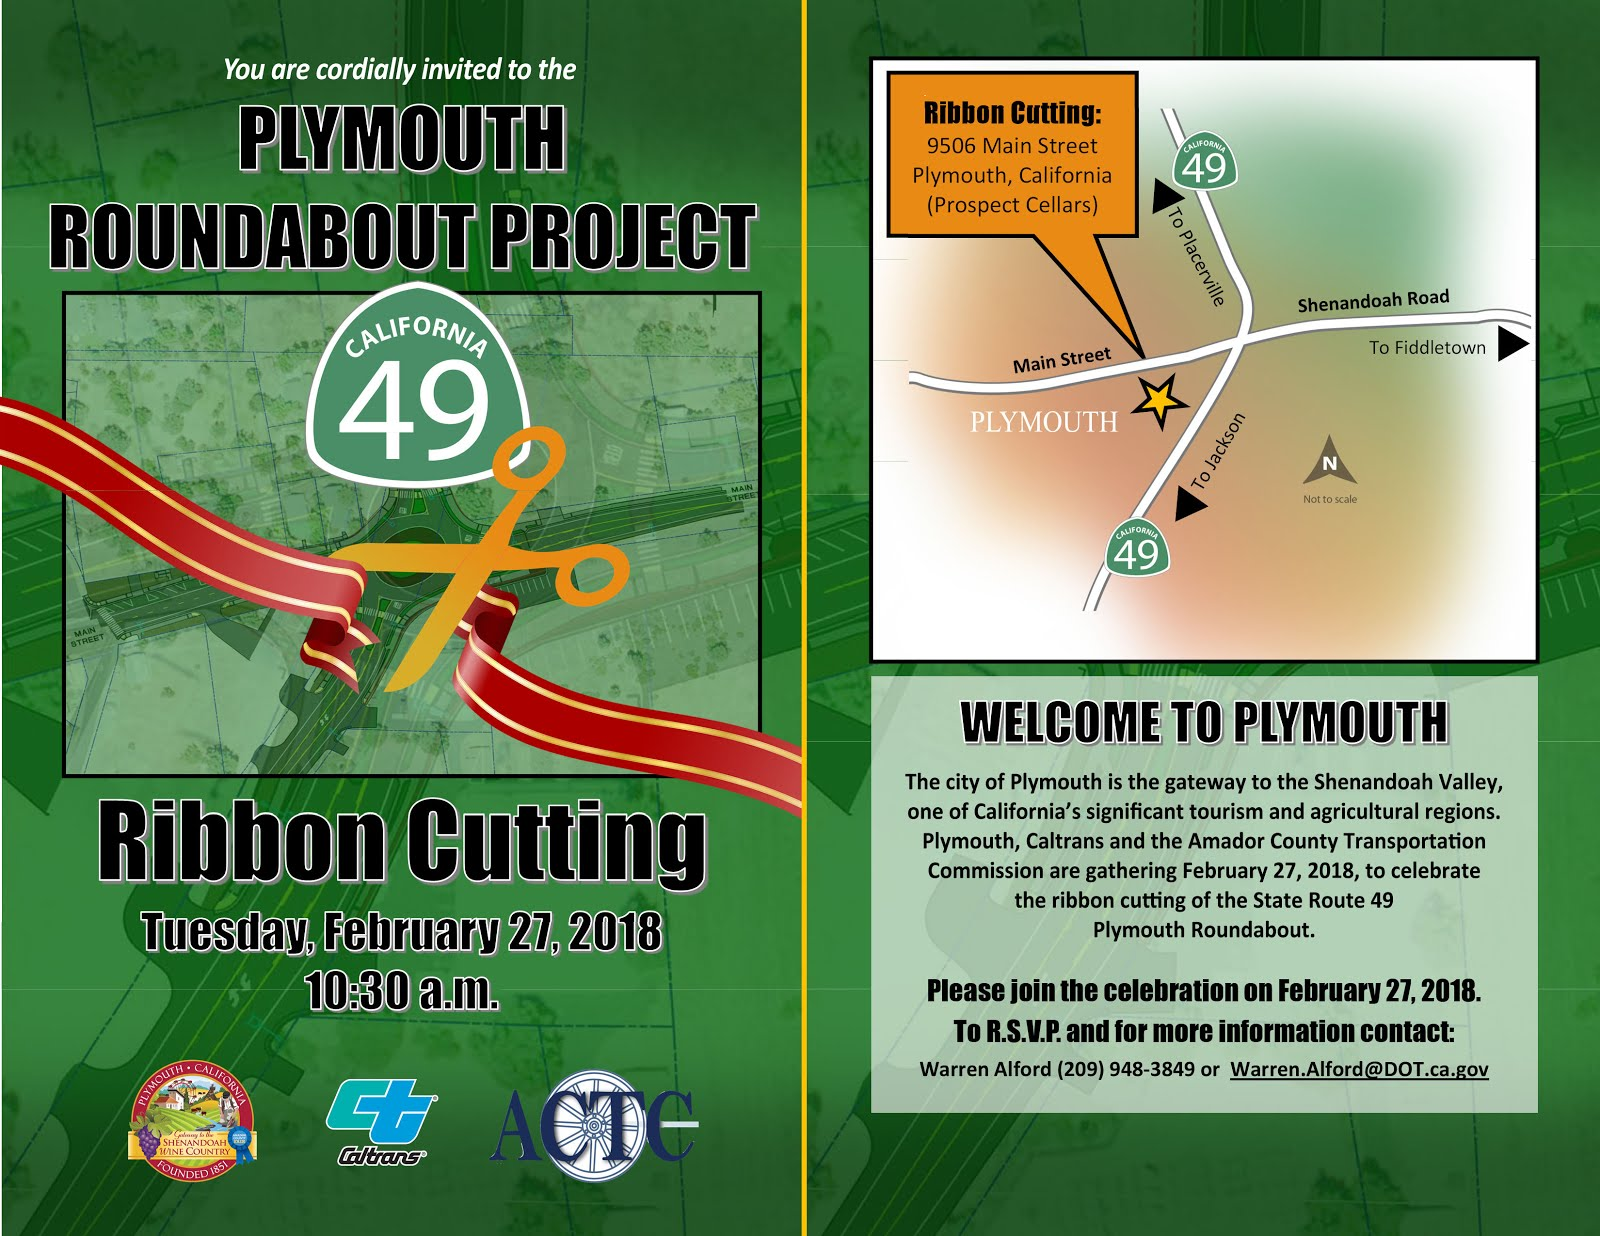 Plymouth Roundabout Project Ribbon Cutting - Tues Feb 27